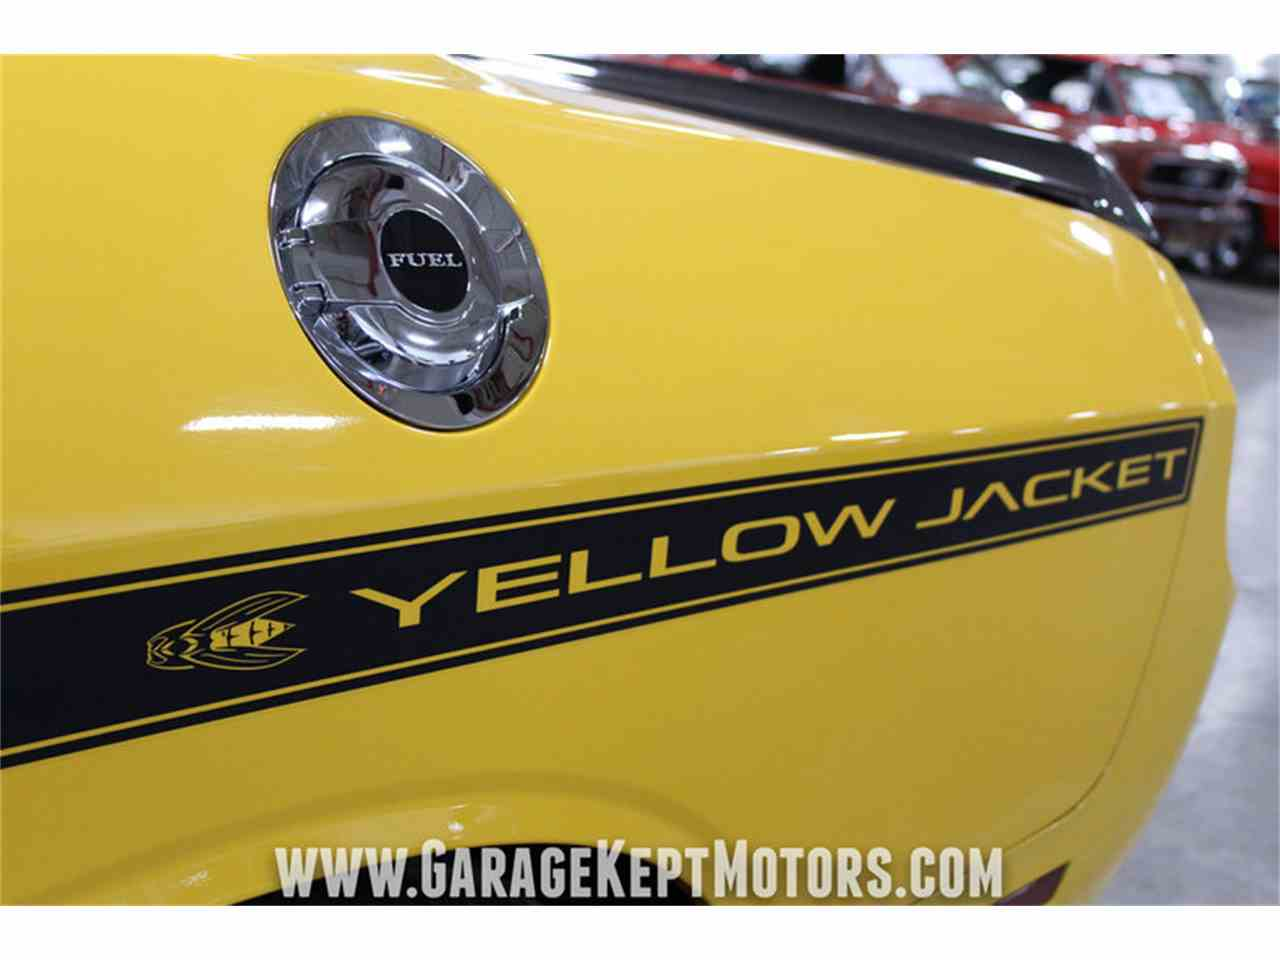 Large Picture of '12 Dodge Challenger SRT8 392 Yellow Jacket located in Grand Rapids Michigan - $36,500.00 Offered by Garage Kept Motors - MAXR